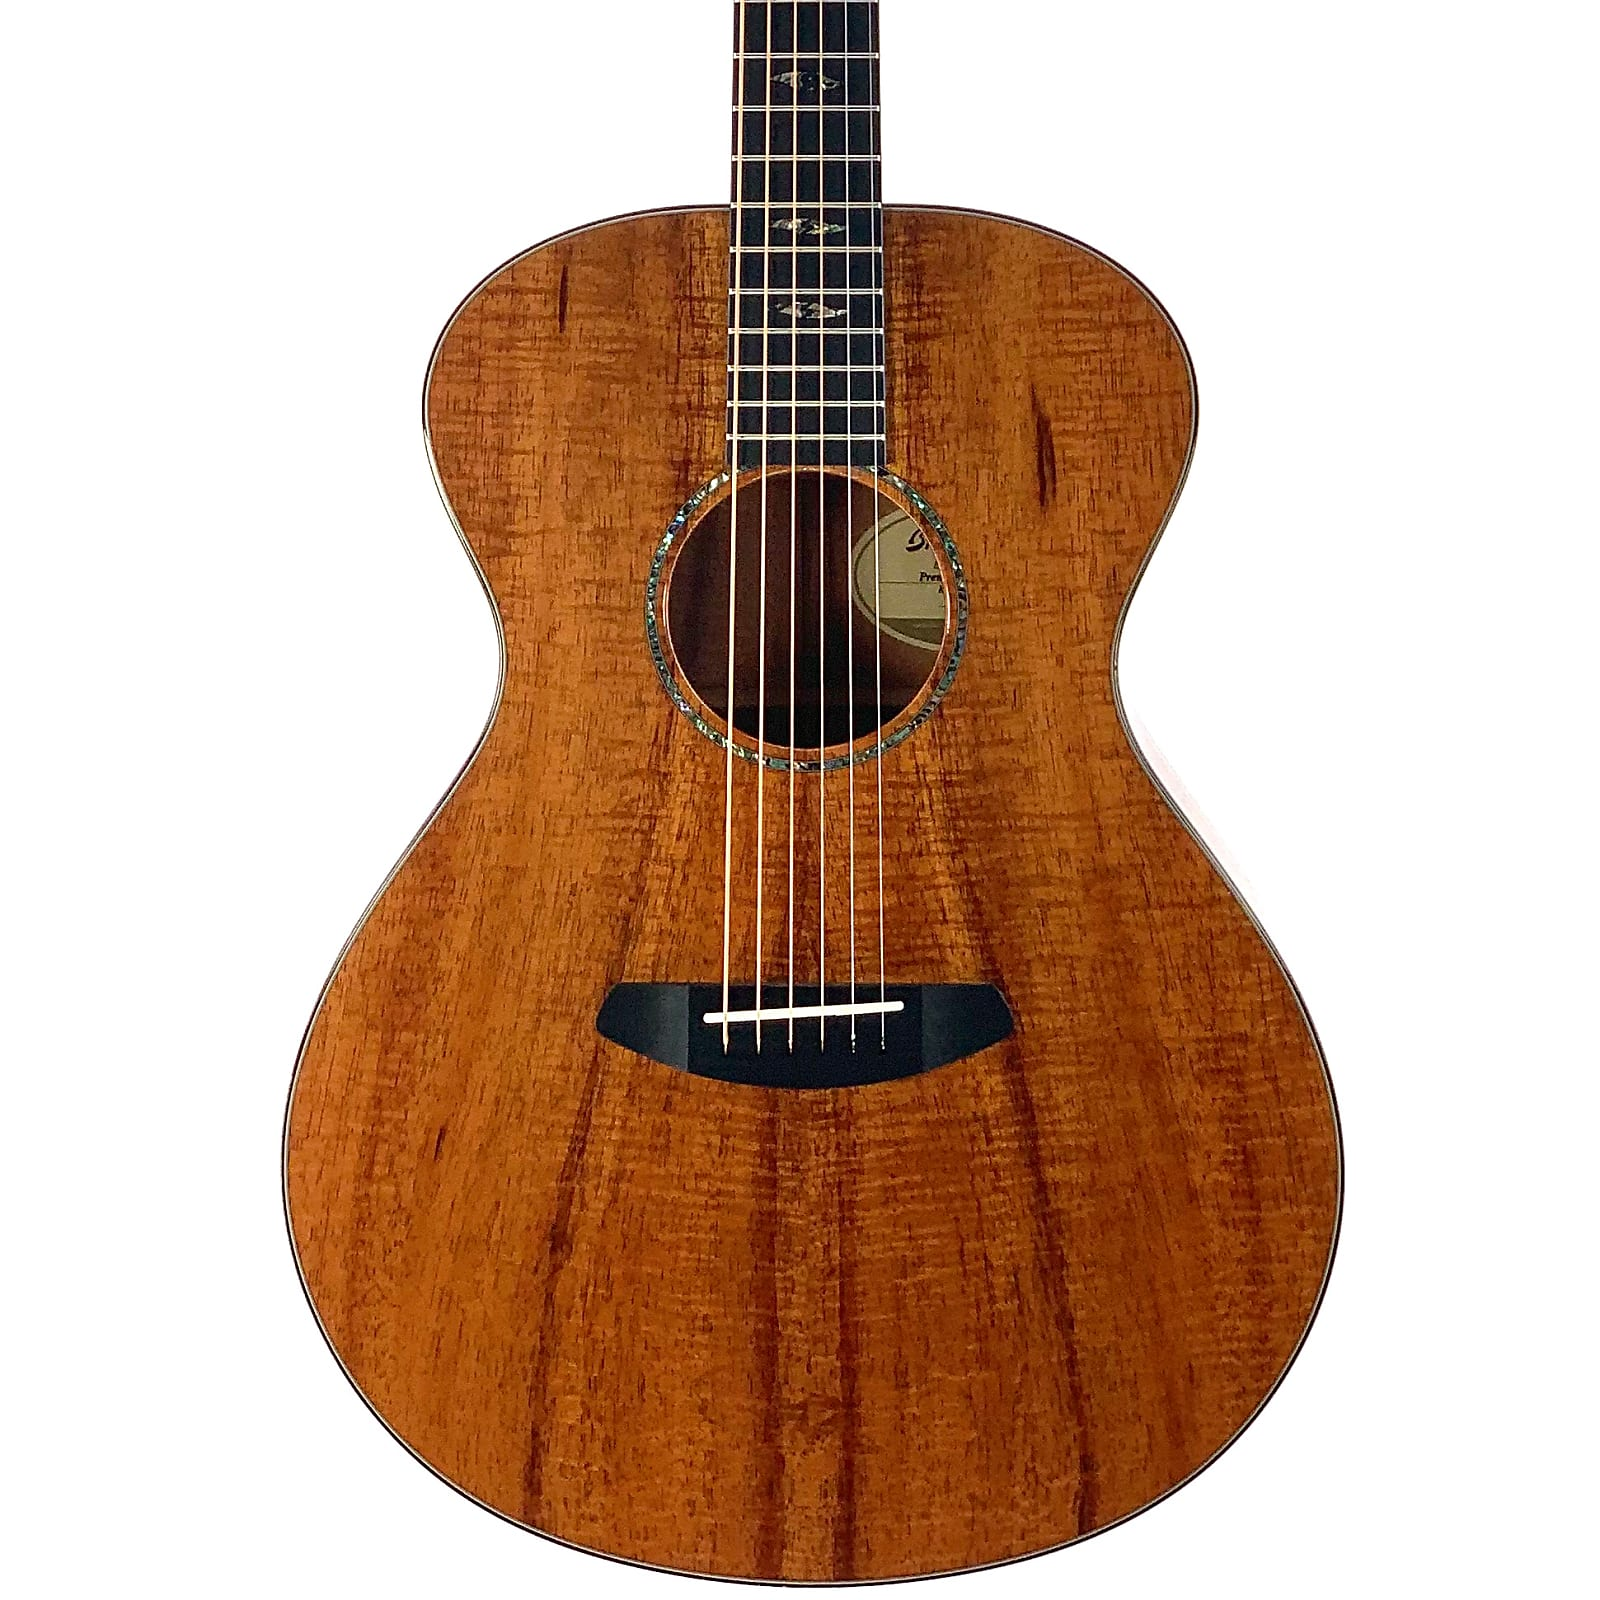 Breedlove Premier Concert Koa-Koa - Brand New - Hardshell Case Included! - On Sale!